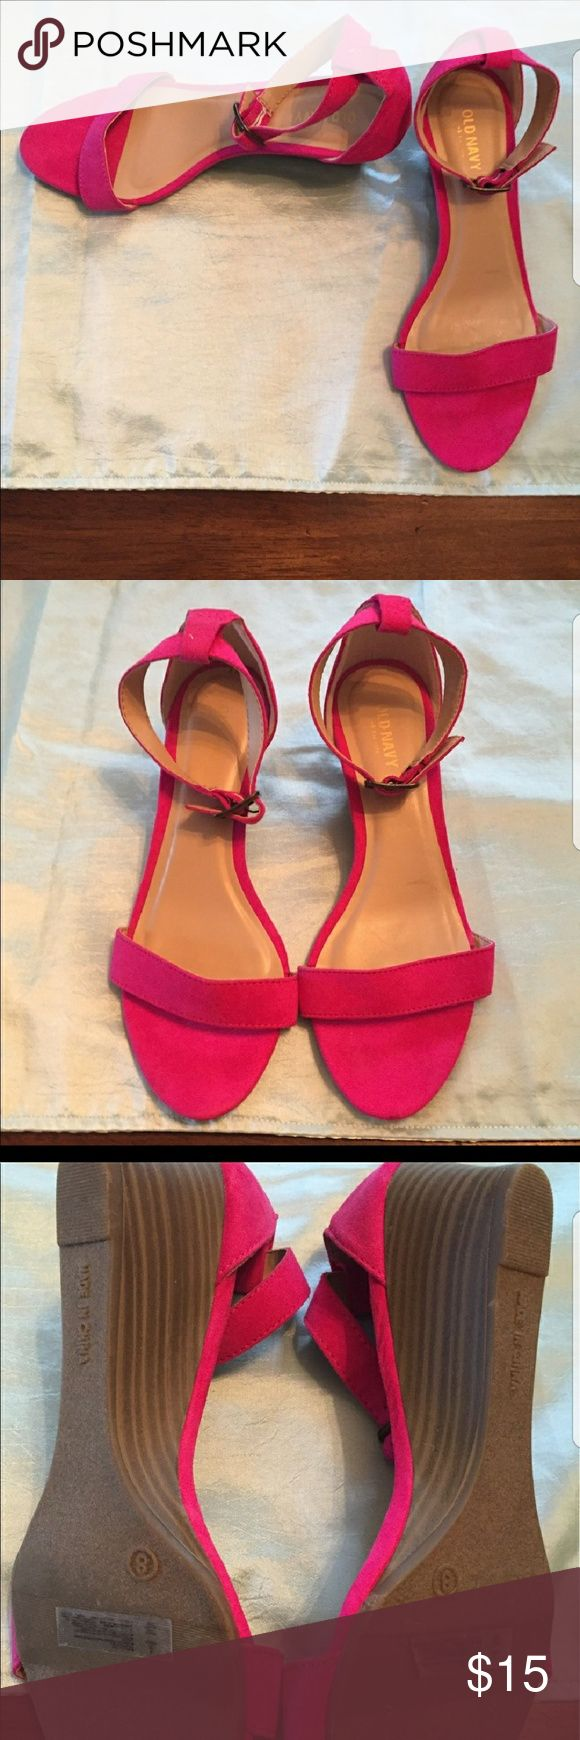 NWOT Hot pink wedge sandal. NWOT hotpink wedge sandal from Old Navy. Love these but they are a little too loose on my feet. Such a cute color for spring and summer! Super comfy height! Old Navy Shoes